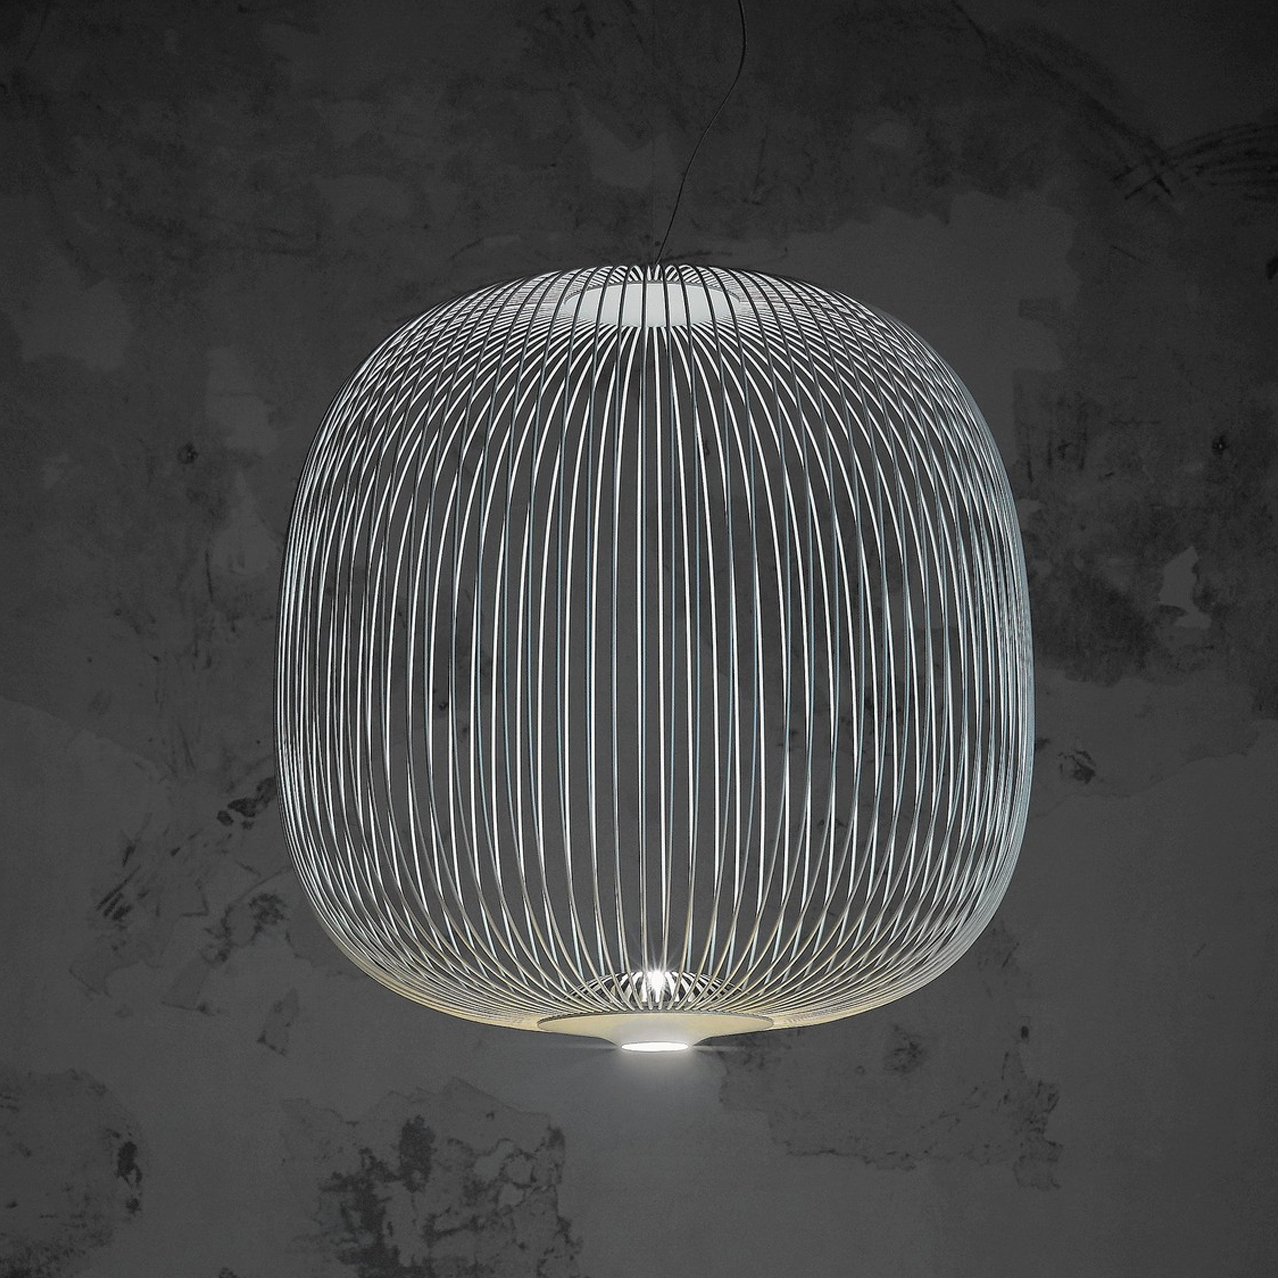 00-foscarini-spokes-2_1